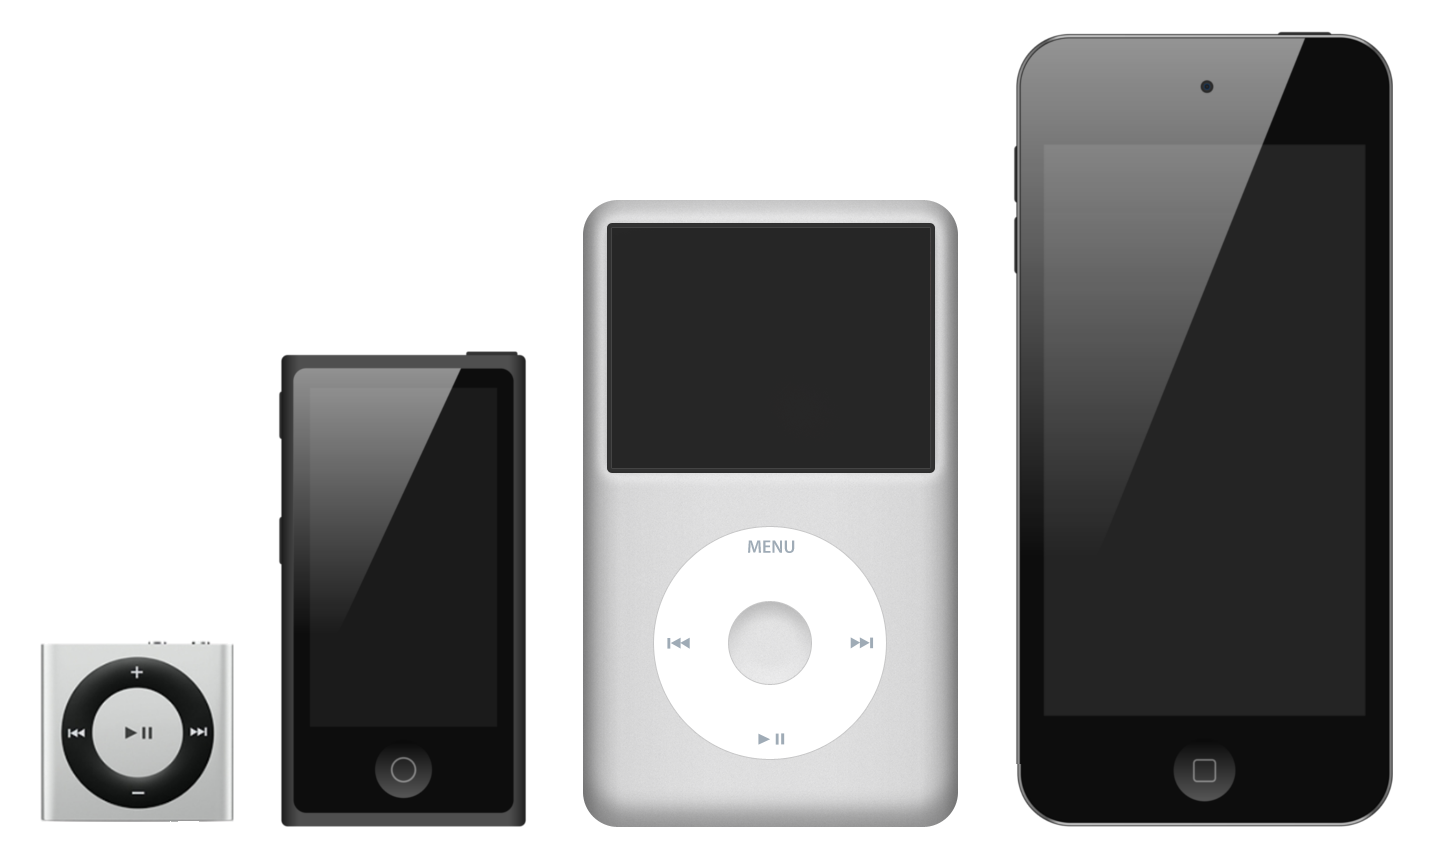 Depiction of IPod